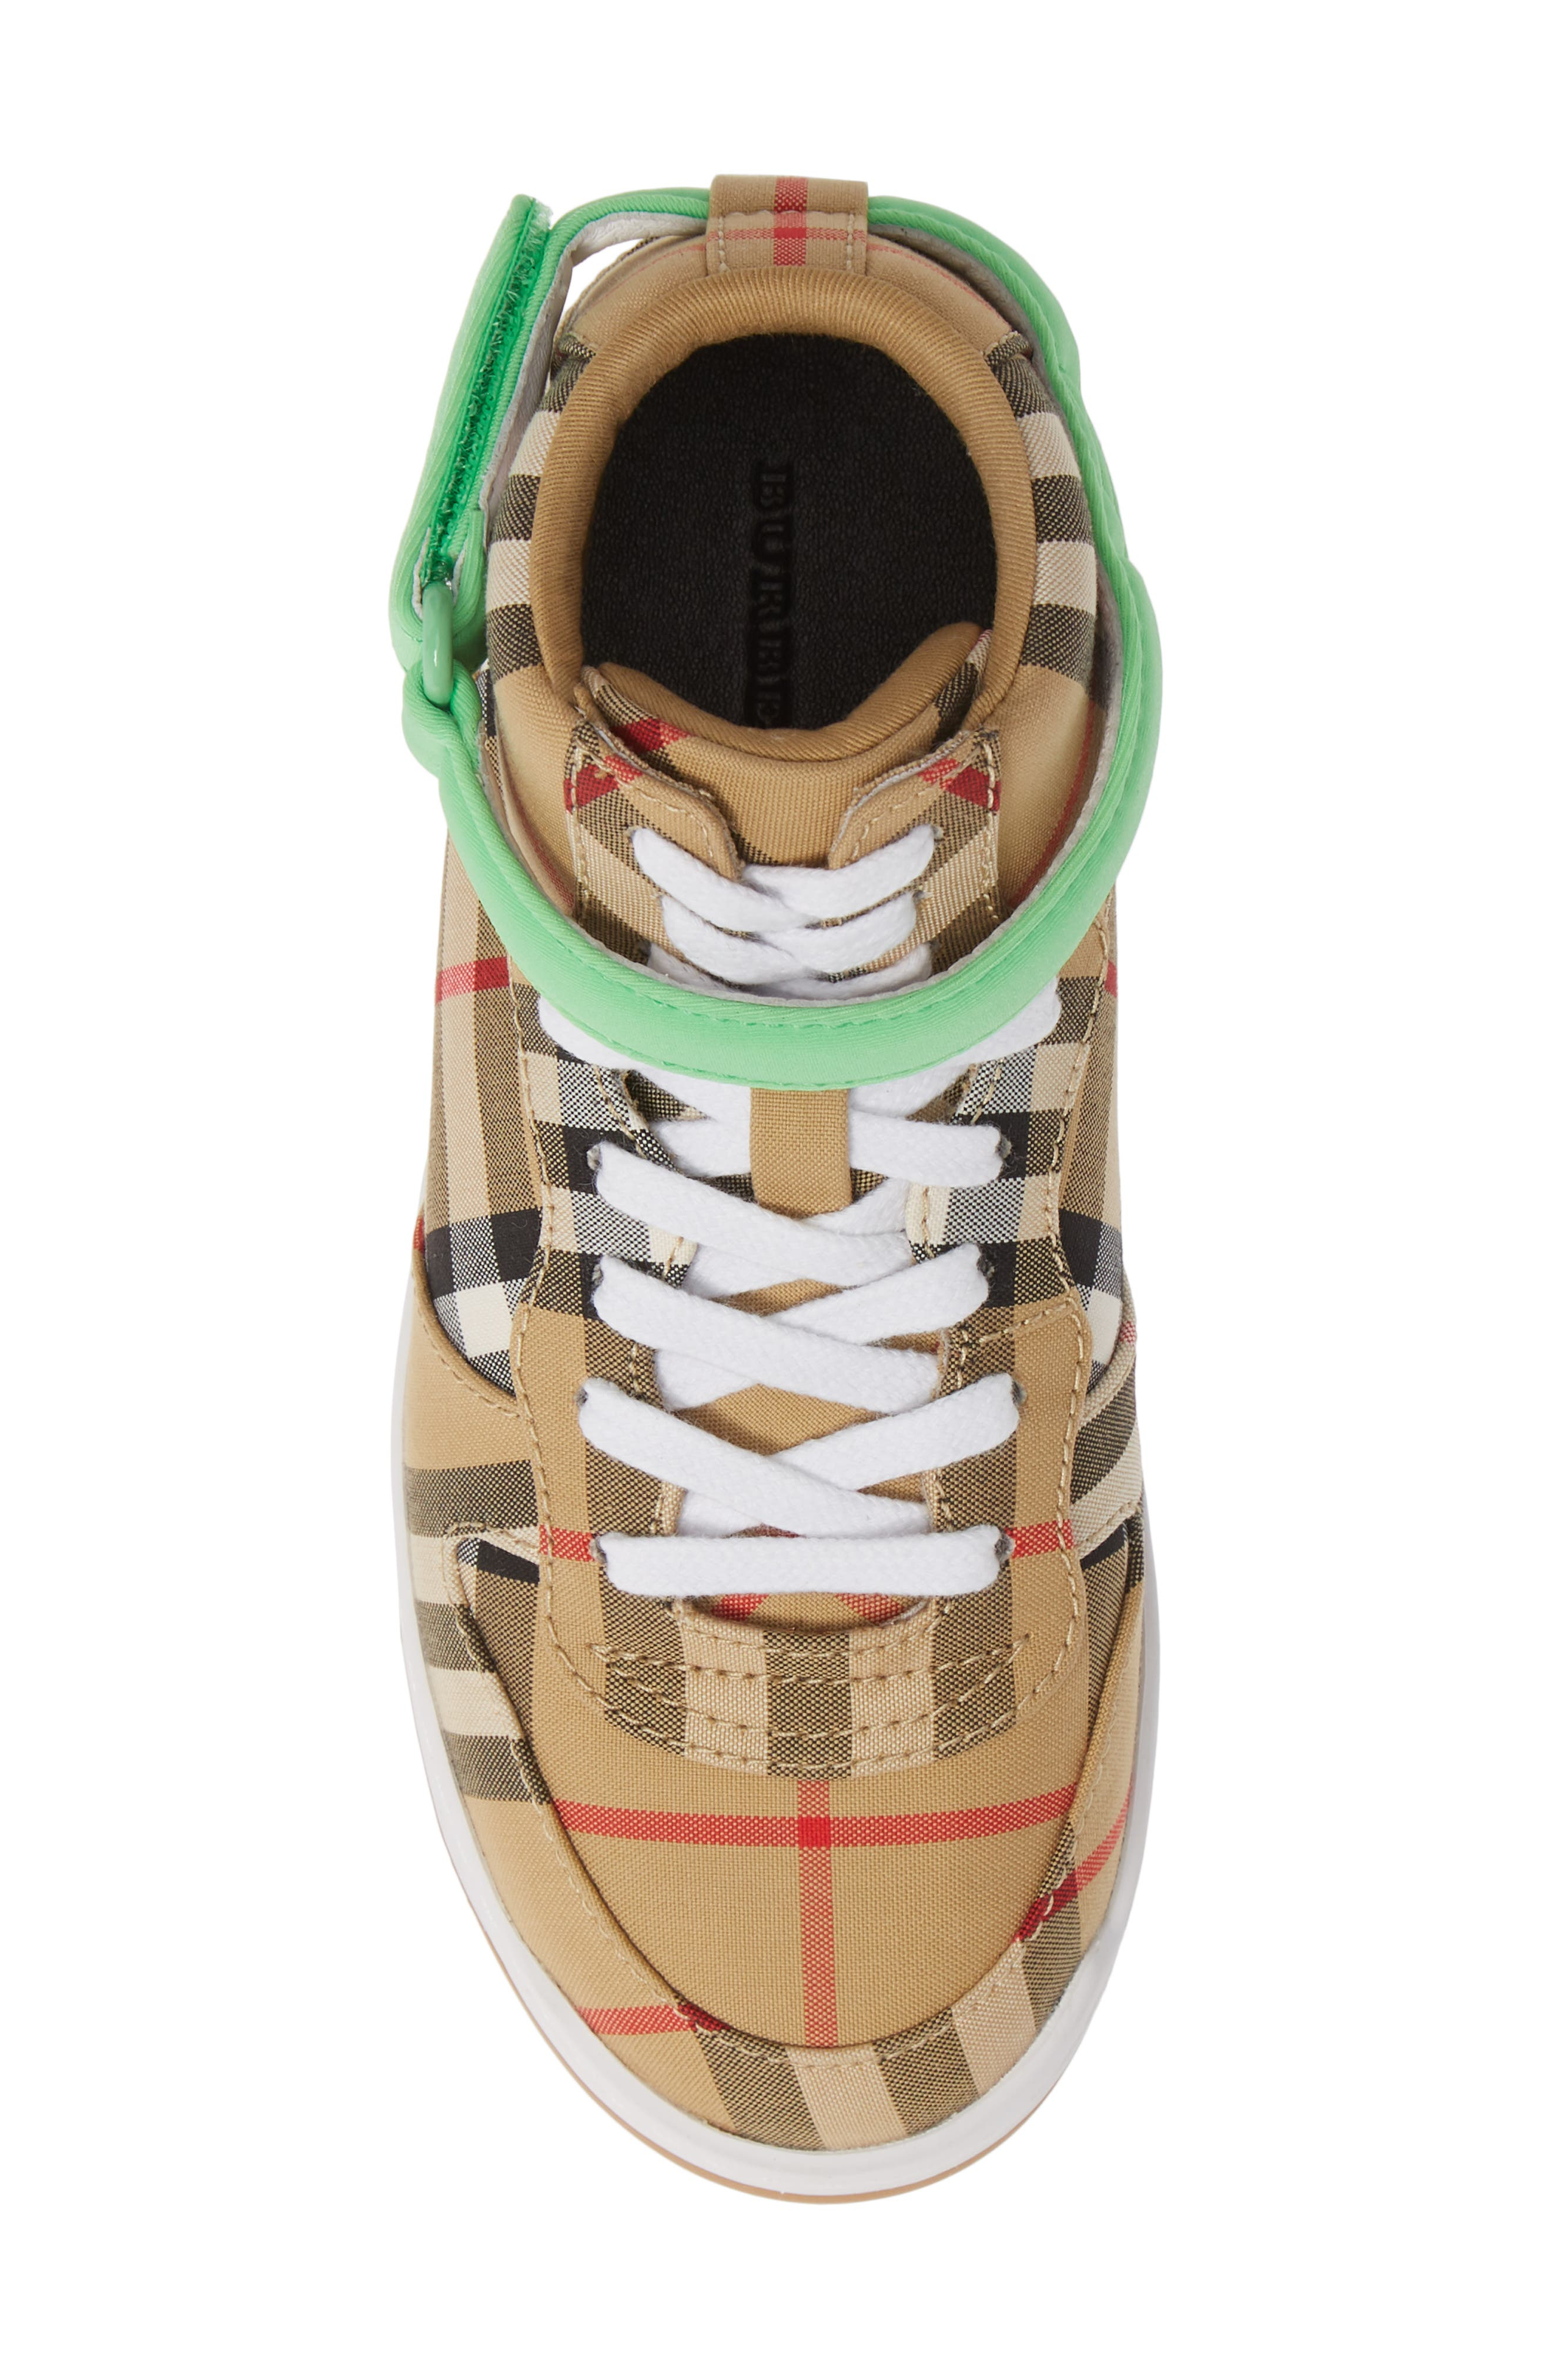 BURBERRY, Groves High Top Sneaker, Alternate thumbnail 5, color, NEON GREEN